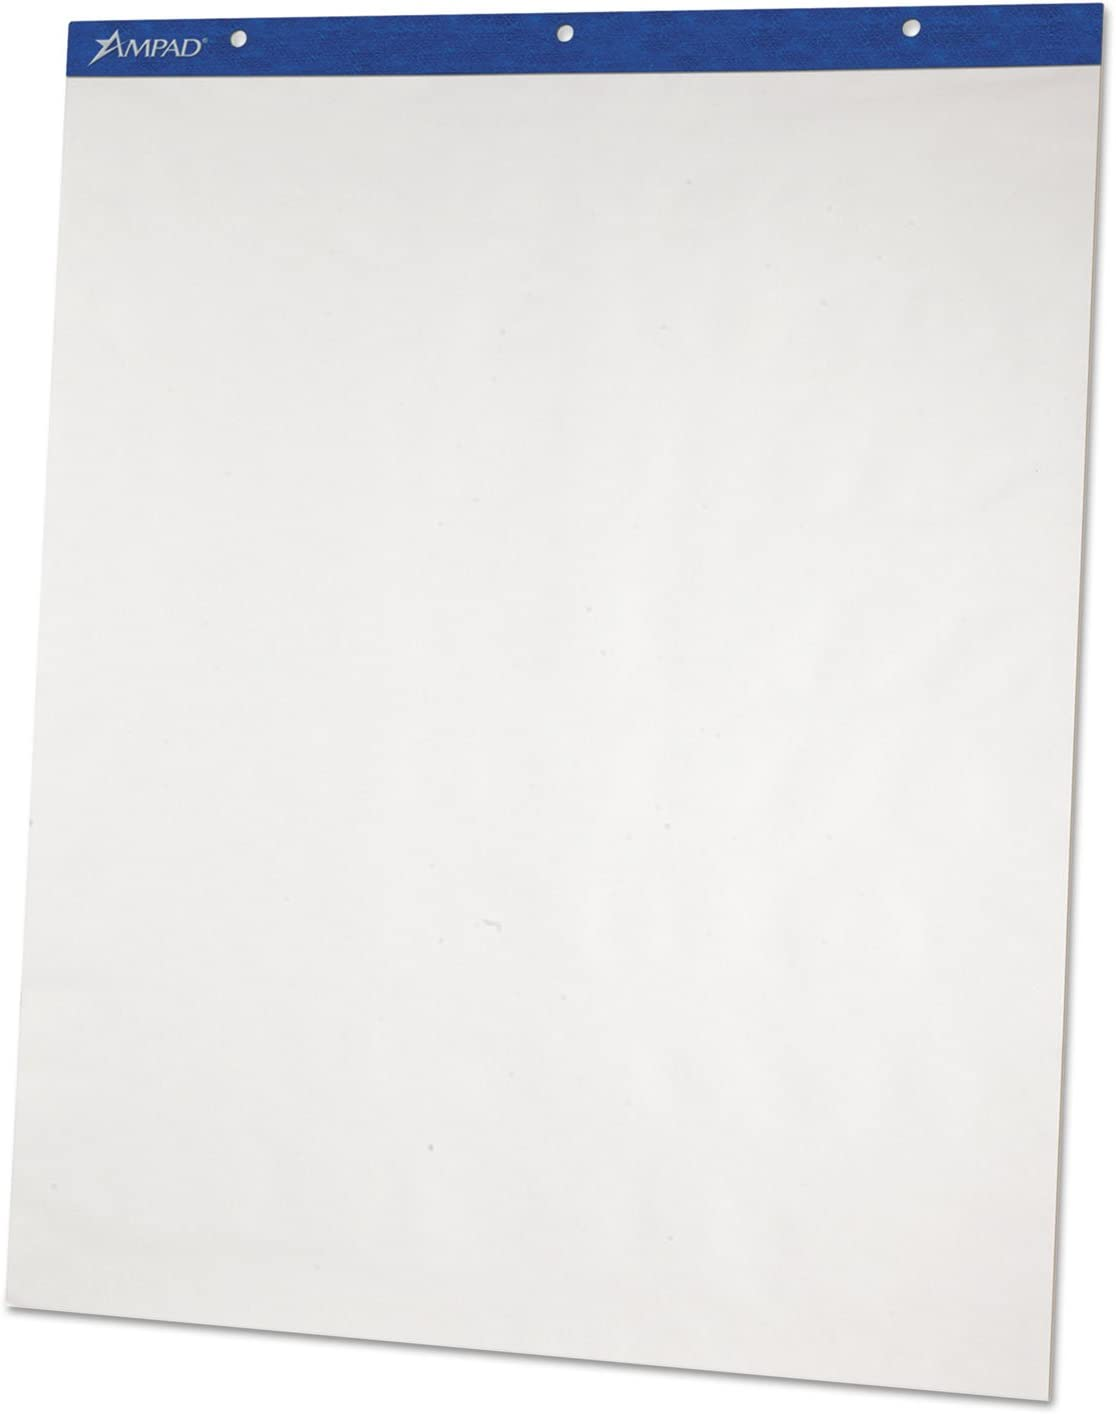 Ampad 24028 Easel Pad Plain Popular products 50 shop 3-Hole x34-Inch 27-Inch Shts